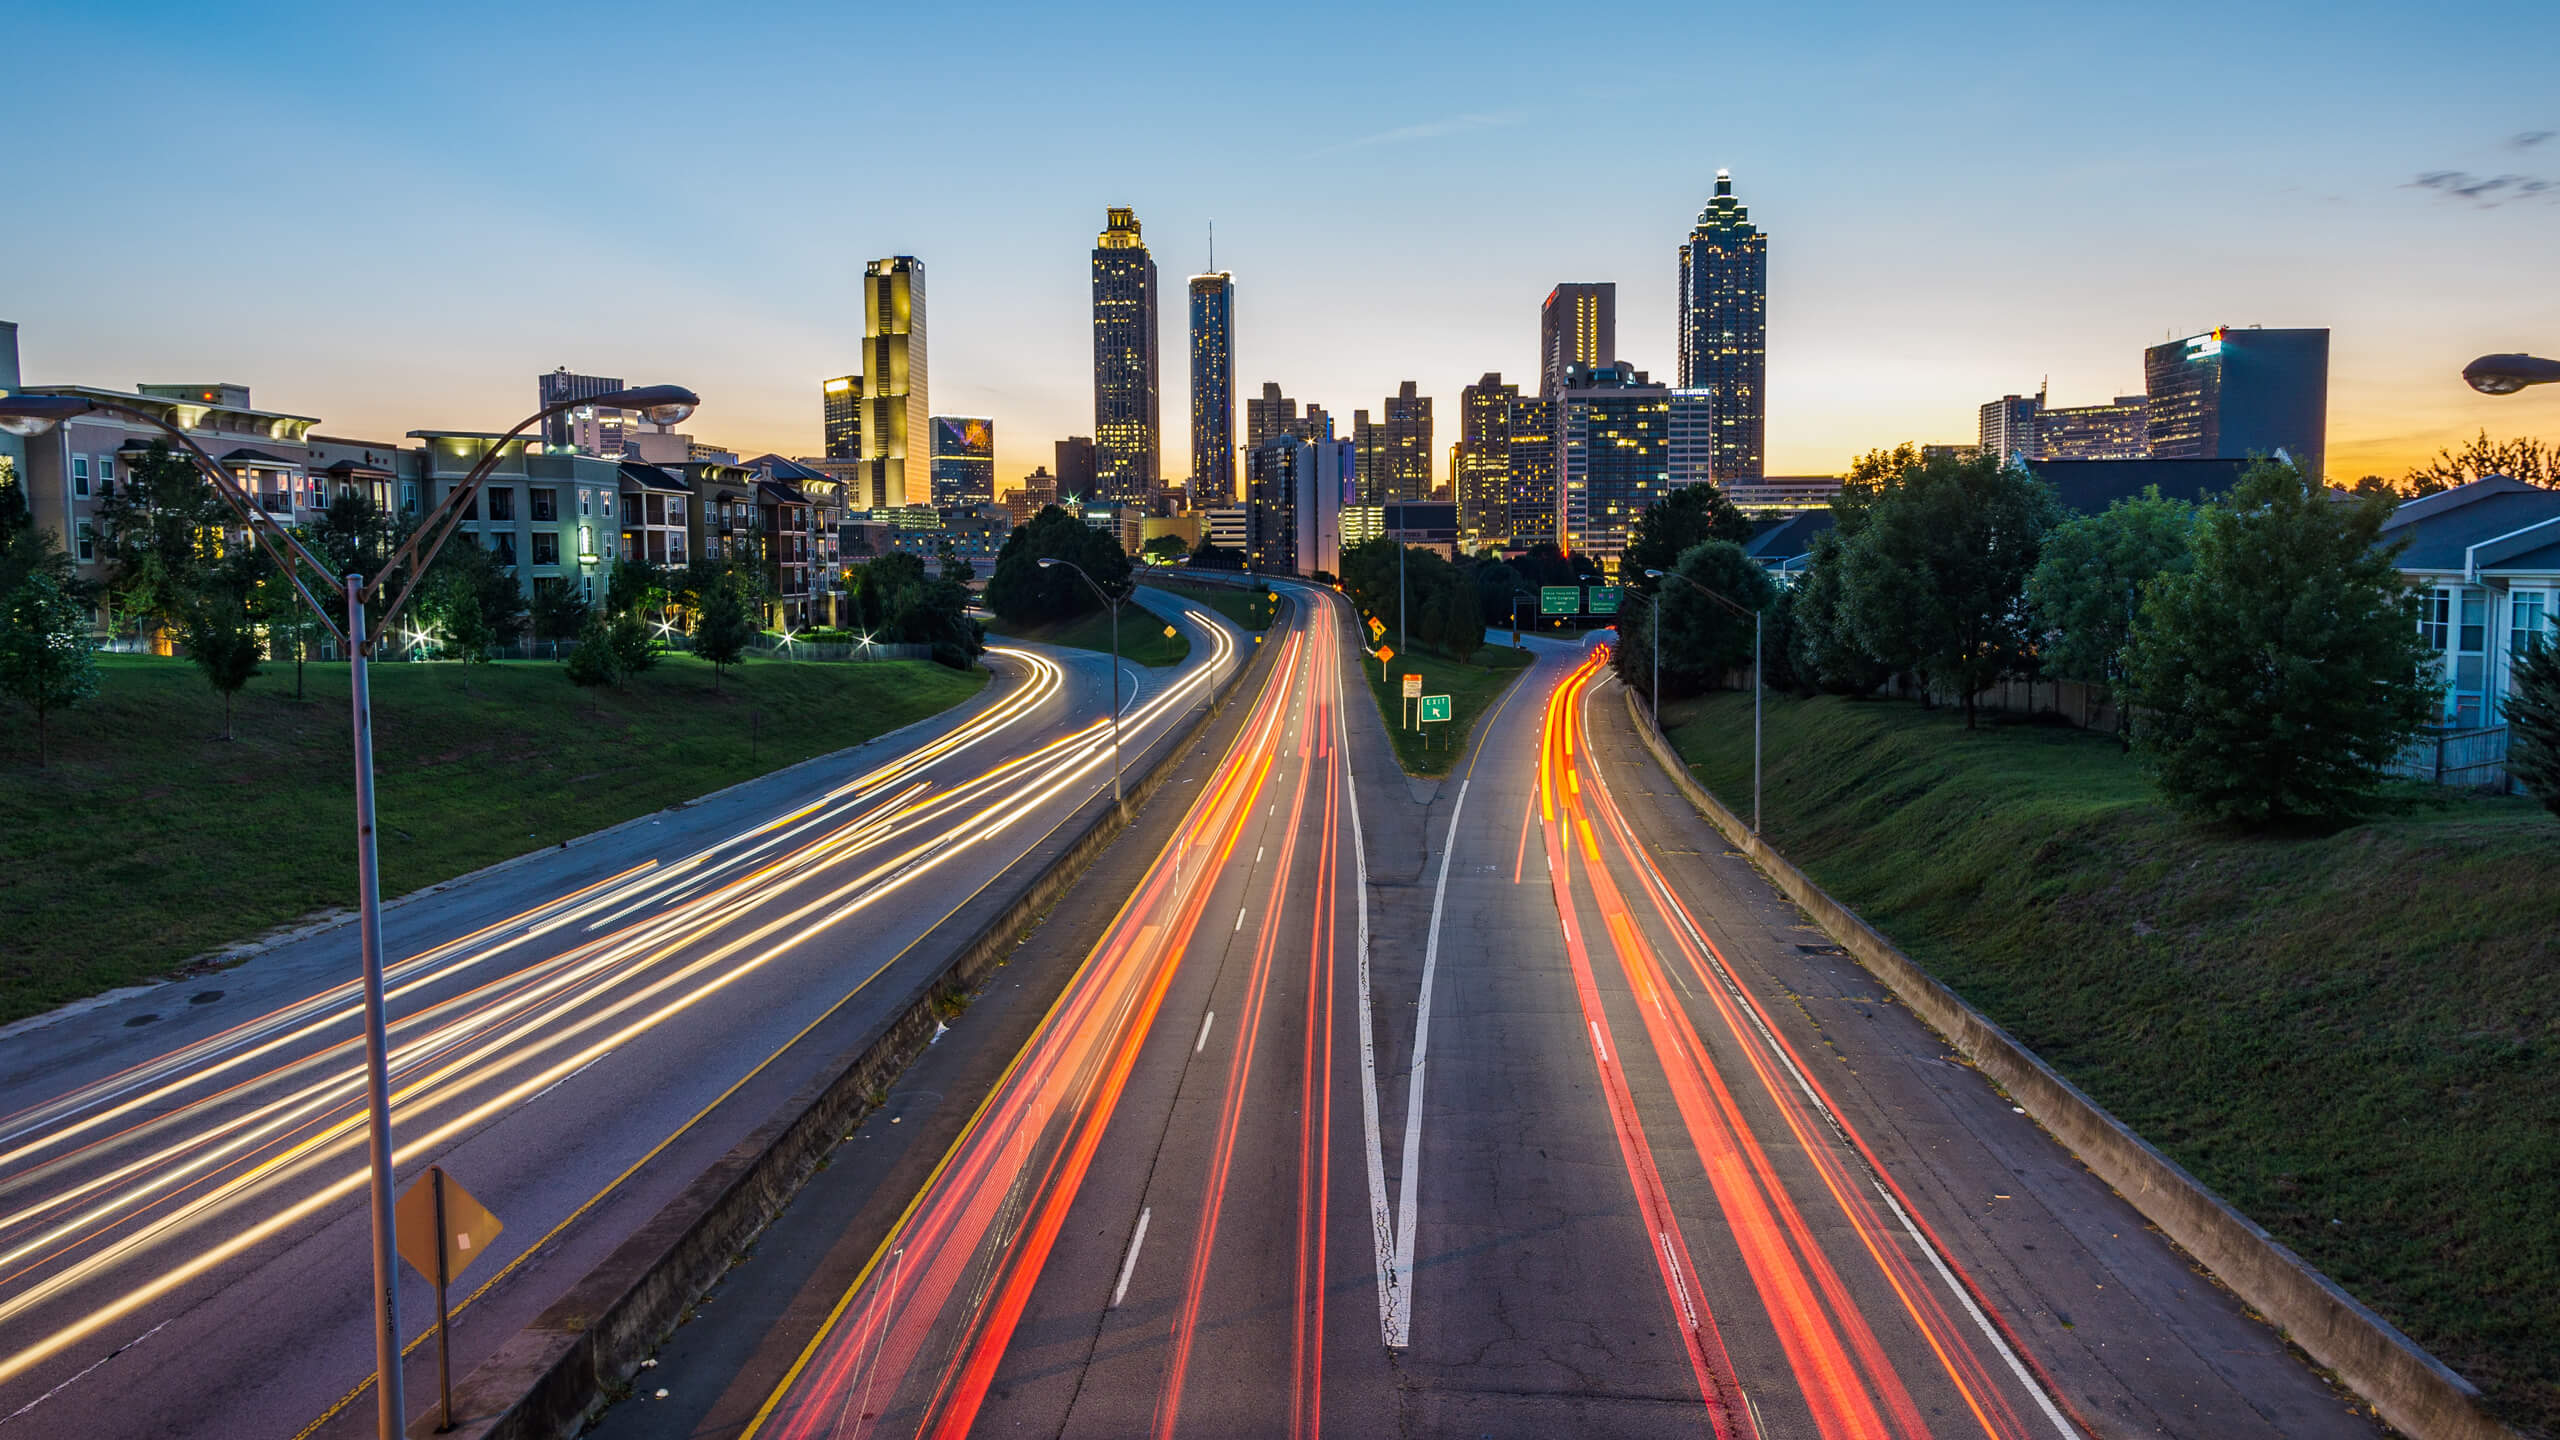 Timelapse photo of cars on a highway and a city in the background